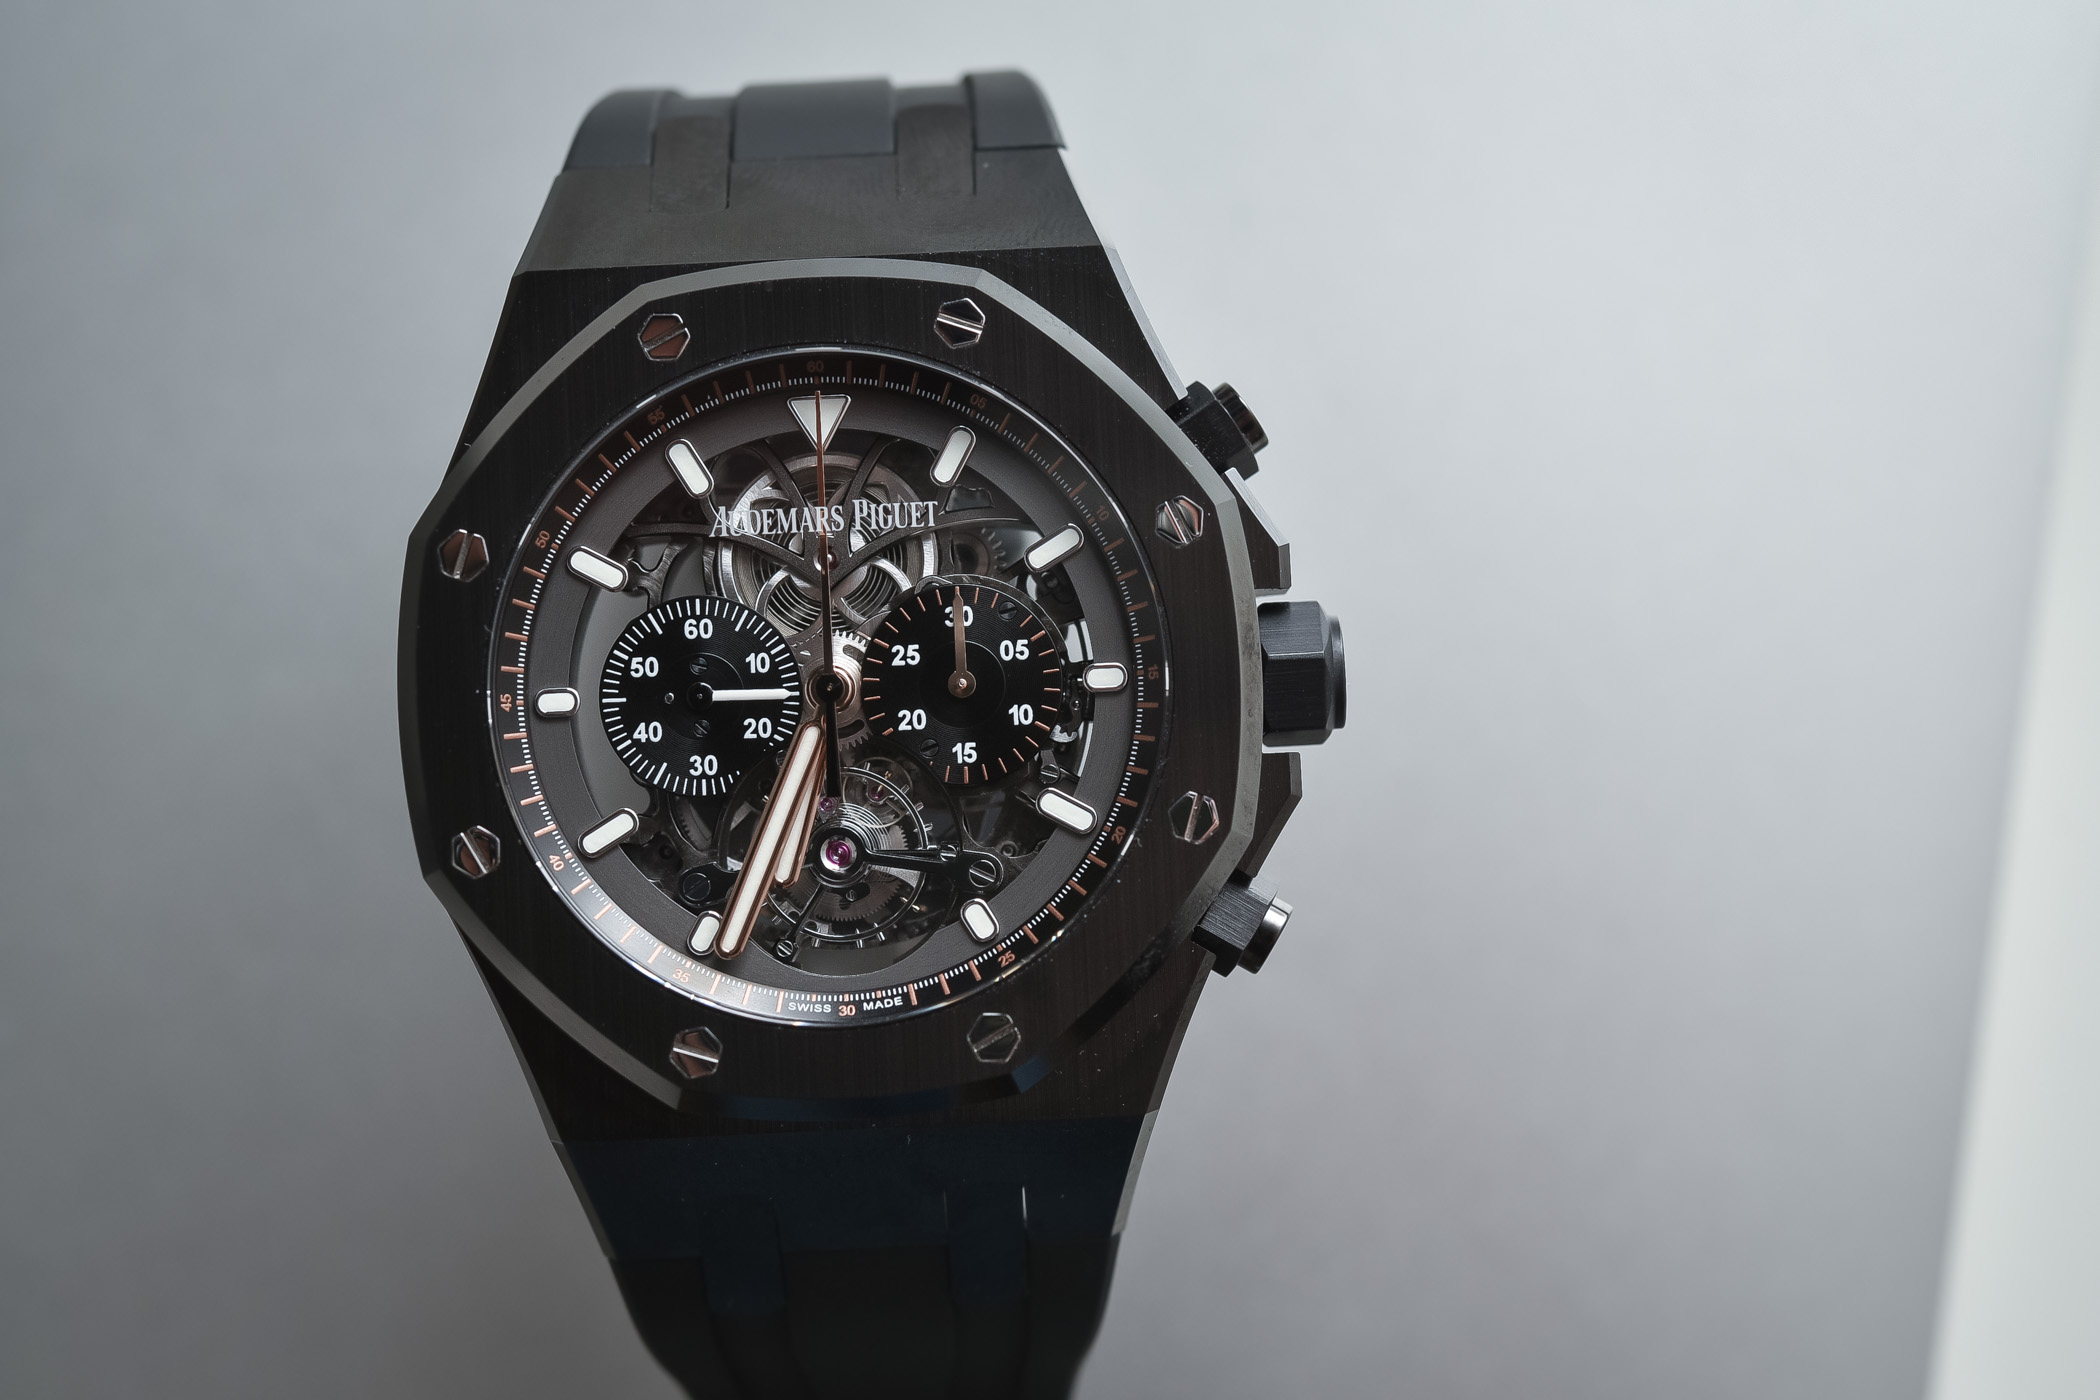 31b647533c2f Audemars Piguet Royal Oak Tourbillon Chronograph Openworked Black Ceramic  ref. 26343CE